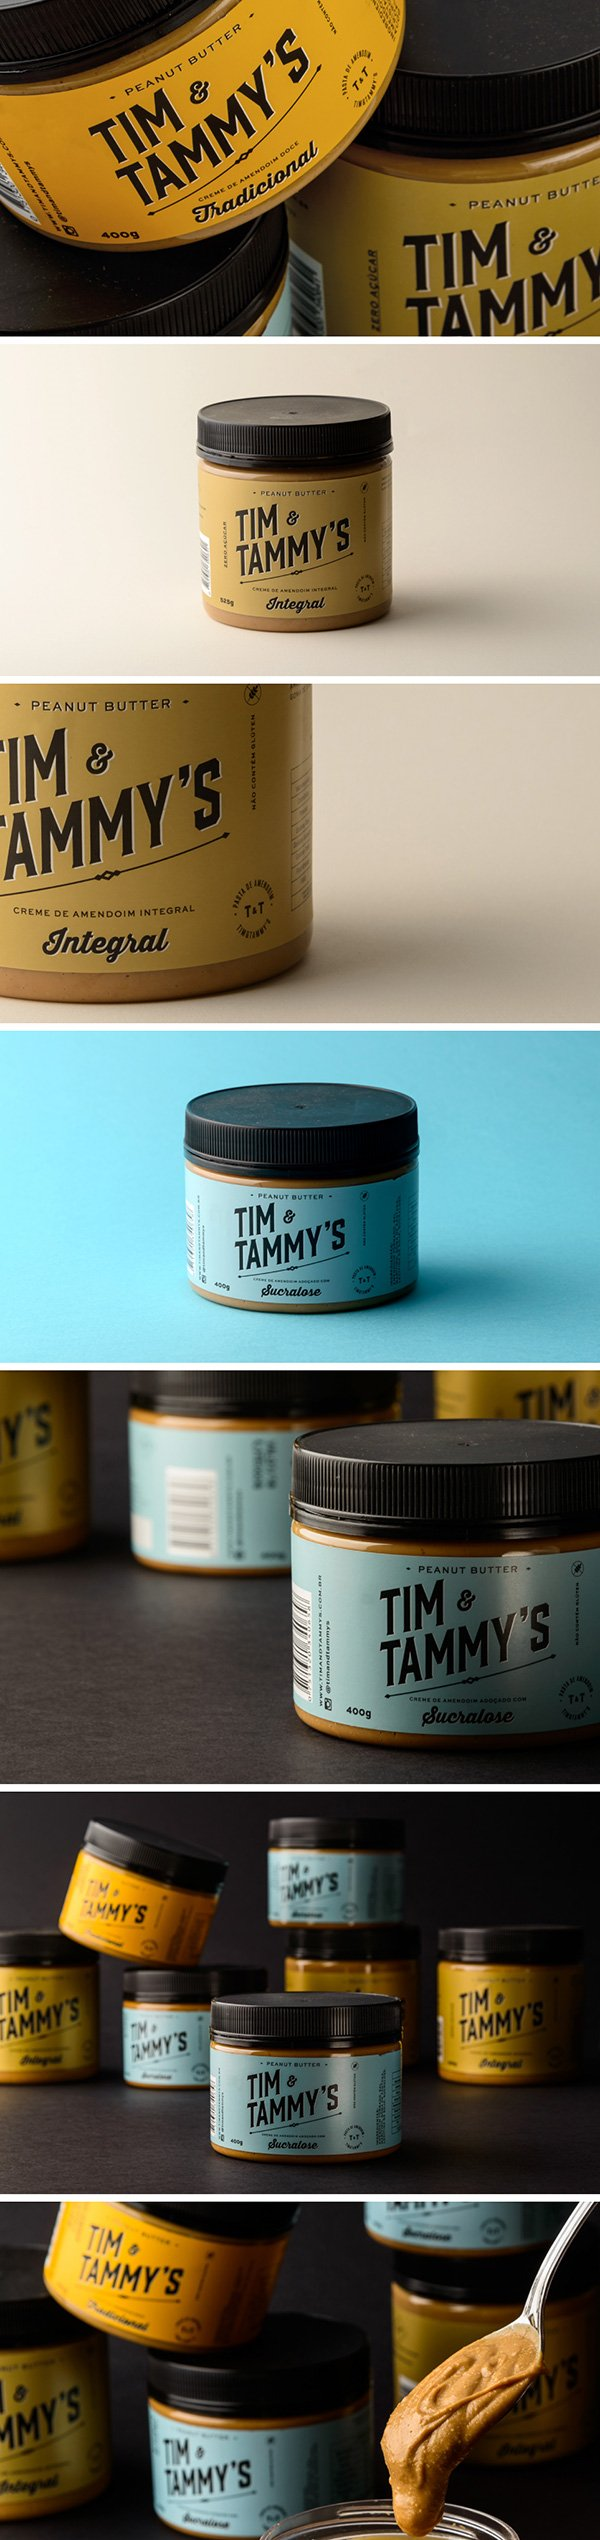 Tim & Tammy's Brand Packaging